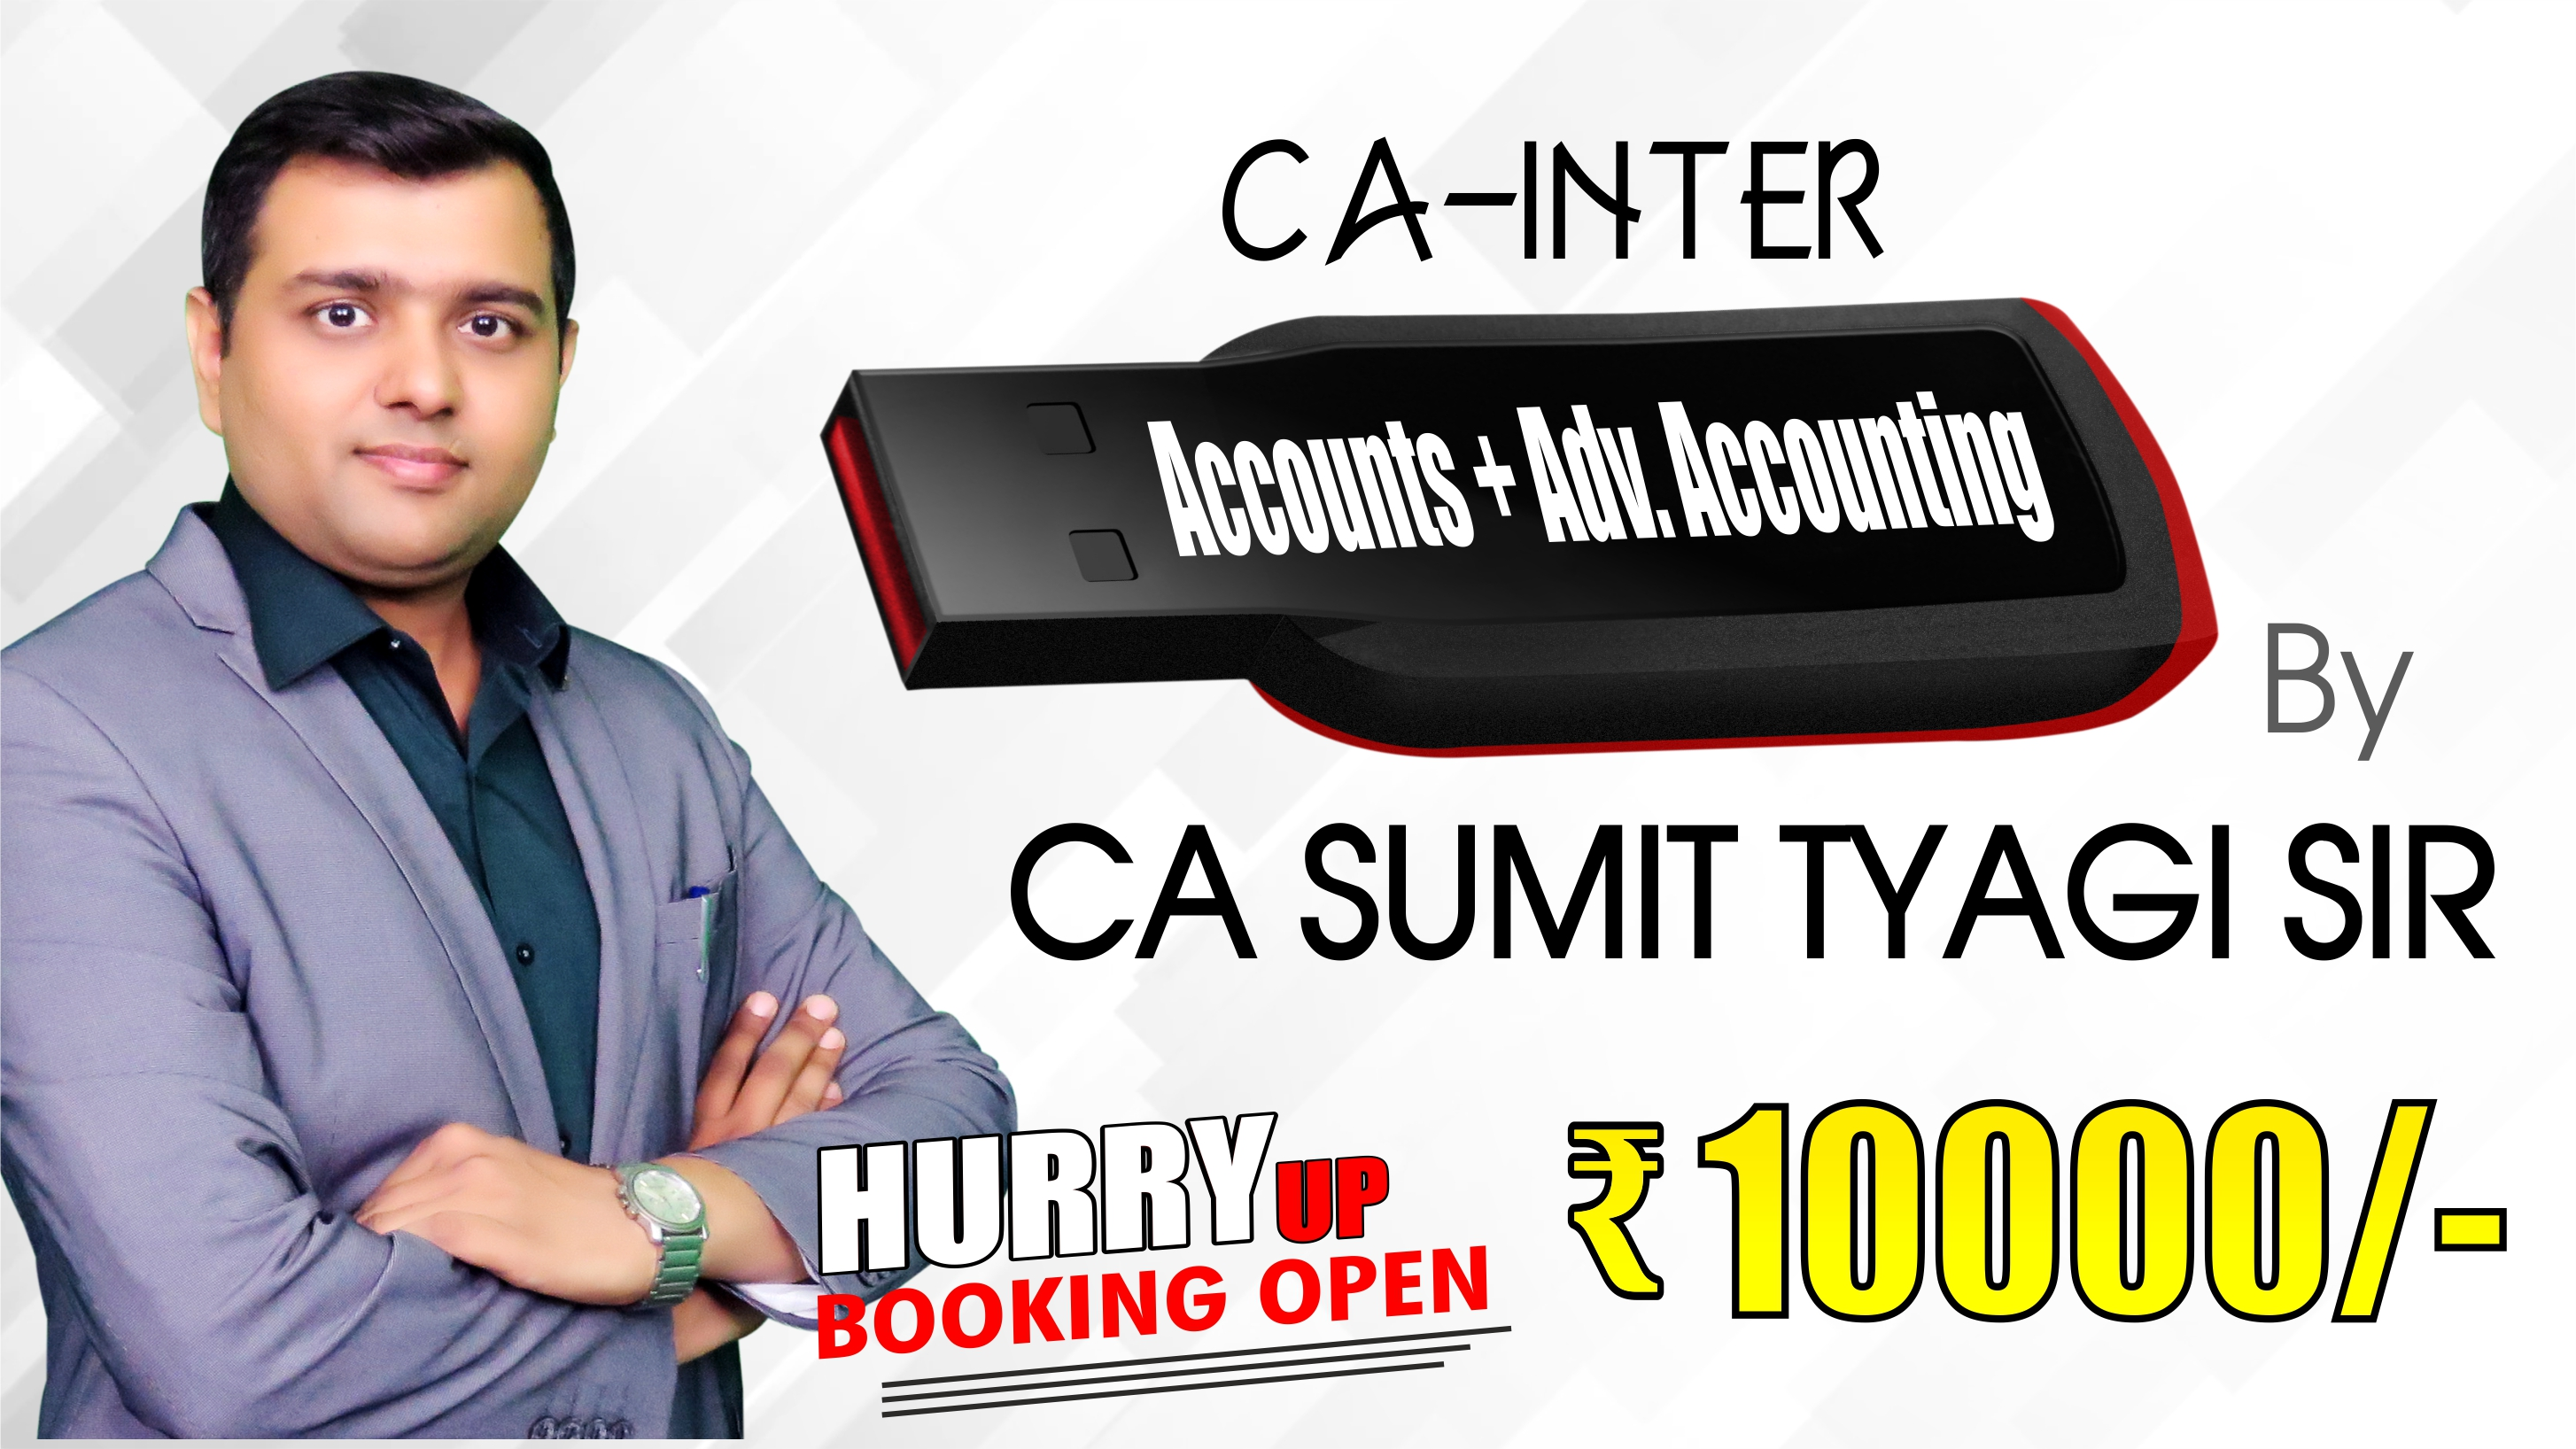 (PRE BOOKING) CA Inter ACCOUNTS + ADV ACCOUNTING Pendrive Classes by CA Sumit Tyagi Sir For May 20 & Onwards - Full HD Video Lecture + HQ Sound